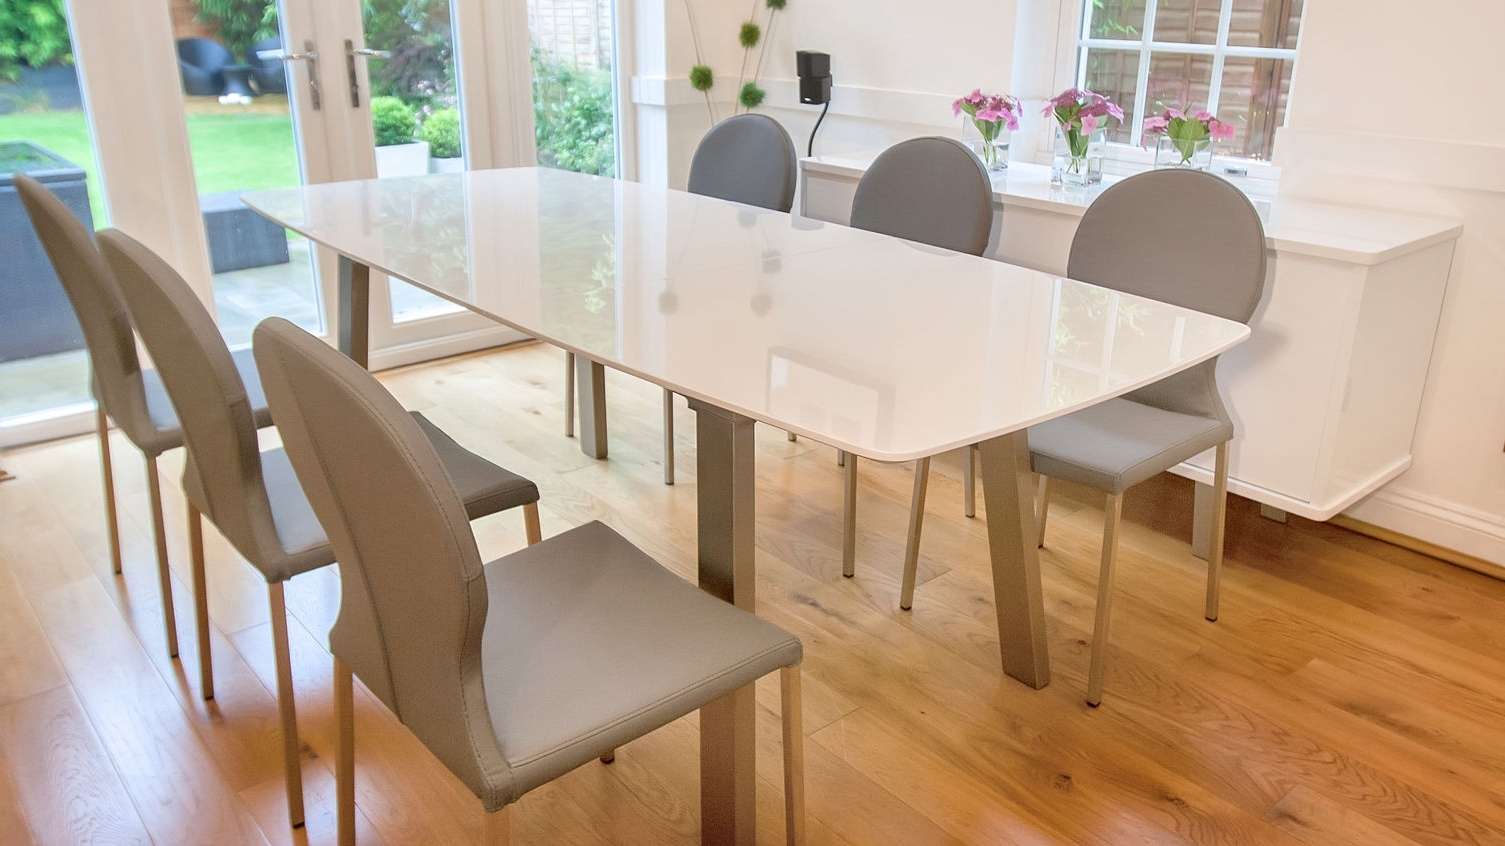 Extending Dining Room Tables And Chairs Dining Room Chair Slipcovers Throughout Well Known White Extendable Dining Tables And Chairs (View 21 of 25)